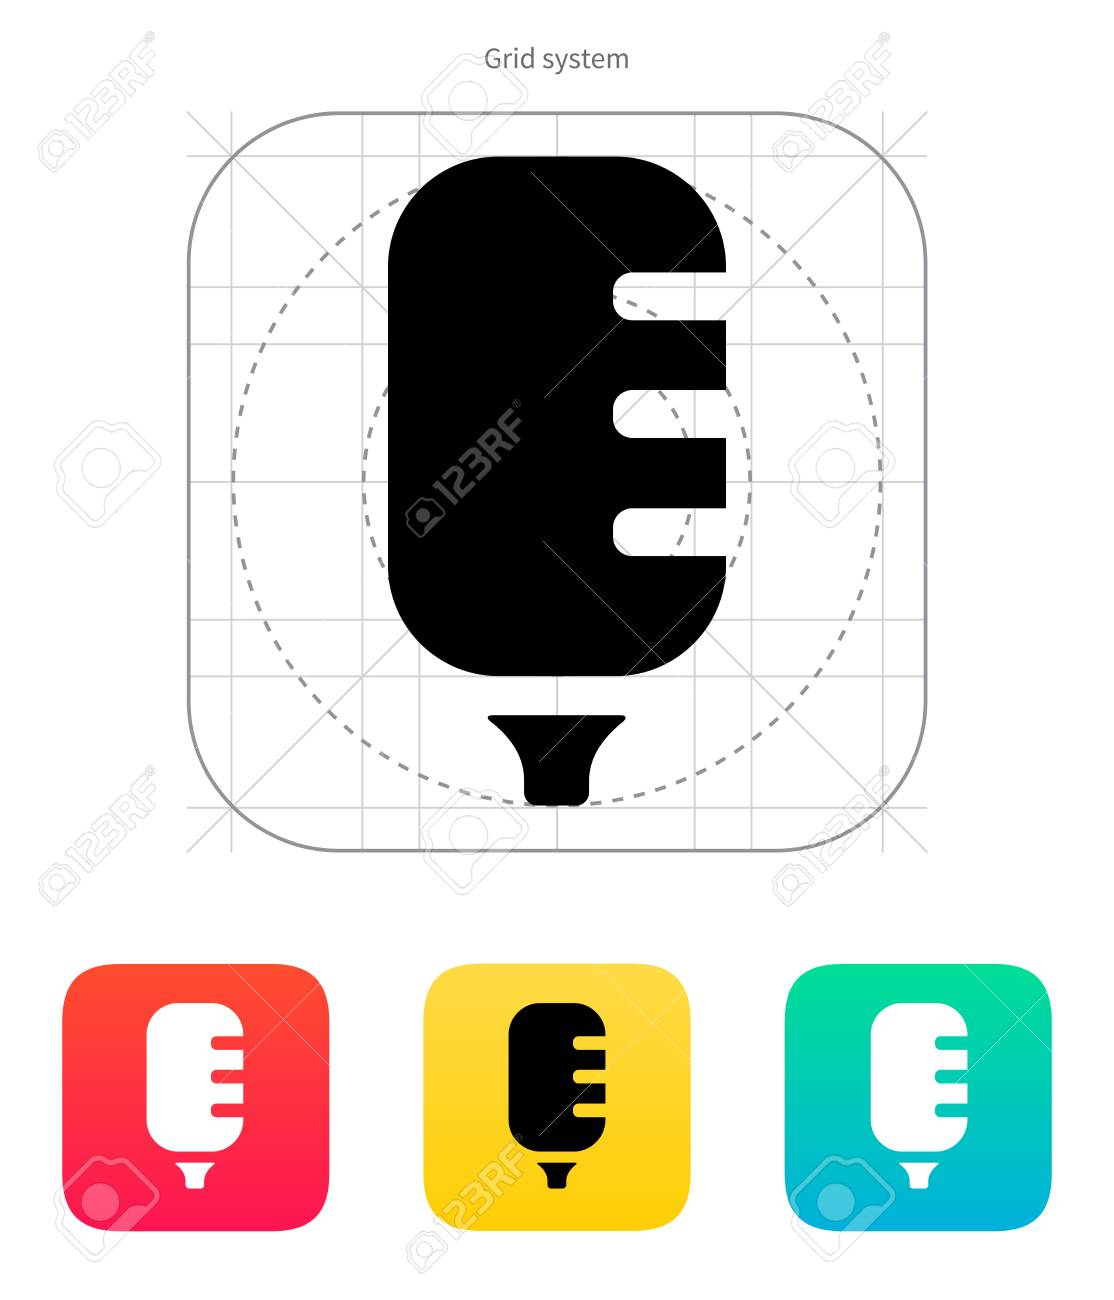 Studio microphone icon vector illustration royalty free cliparts studio microphone icon vector illustration stock vector 22784596 ccuart Images